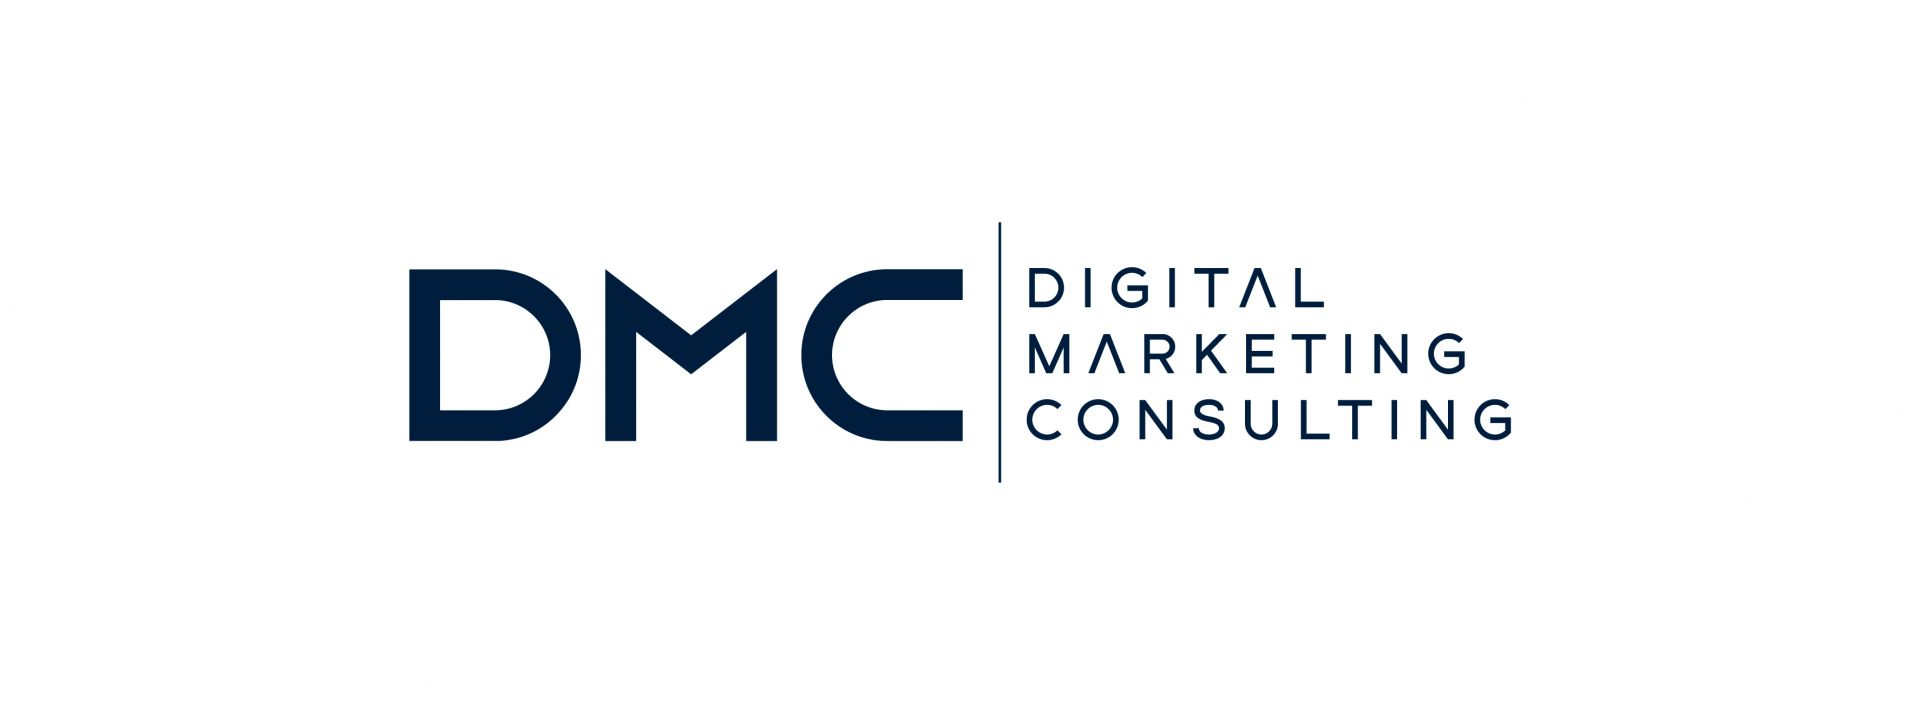 DMC Digital Marketing Consulting